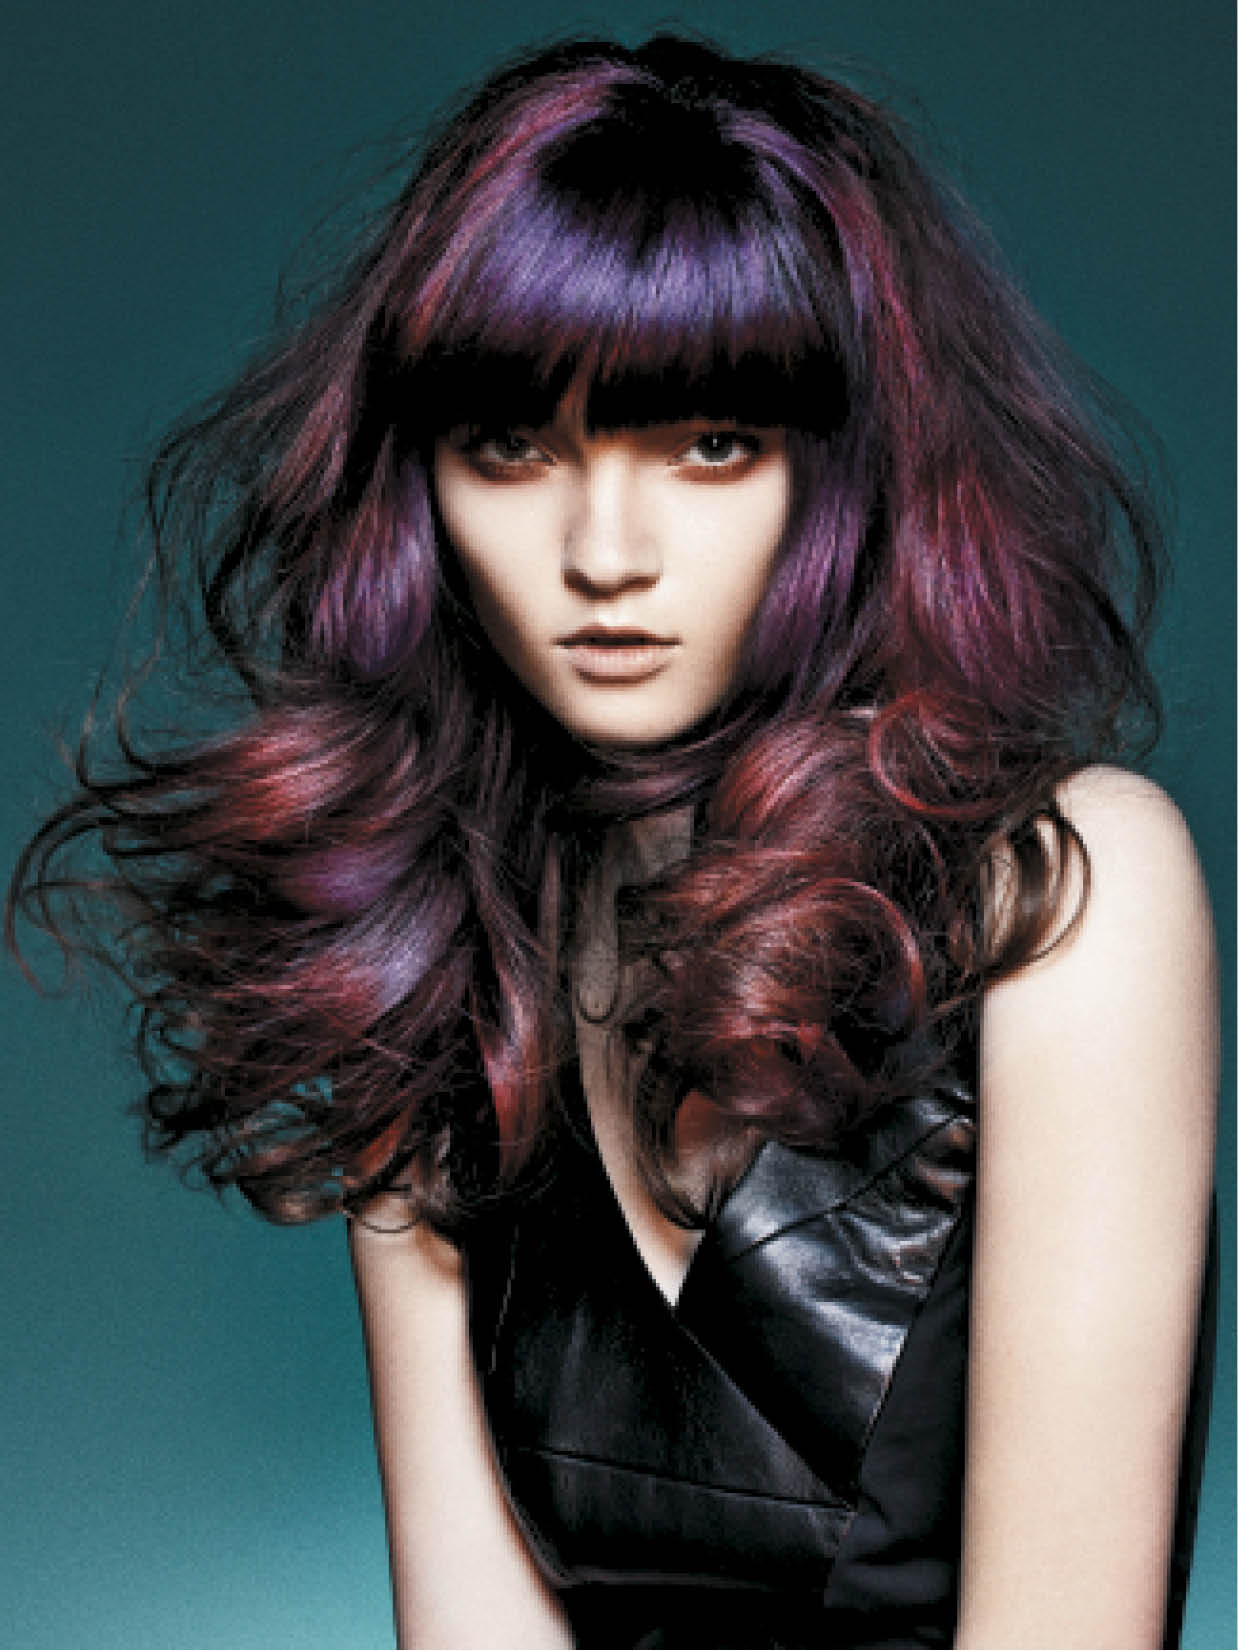 Barton embellished these long, dark and voluminous locks with rich purples and reds for the illusion of extra shine.